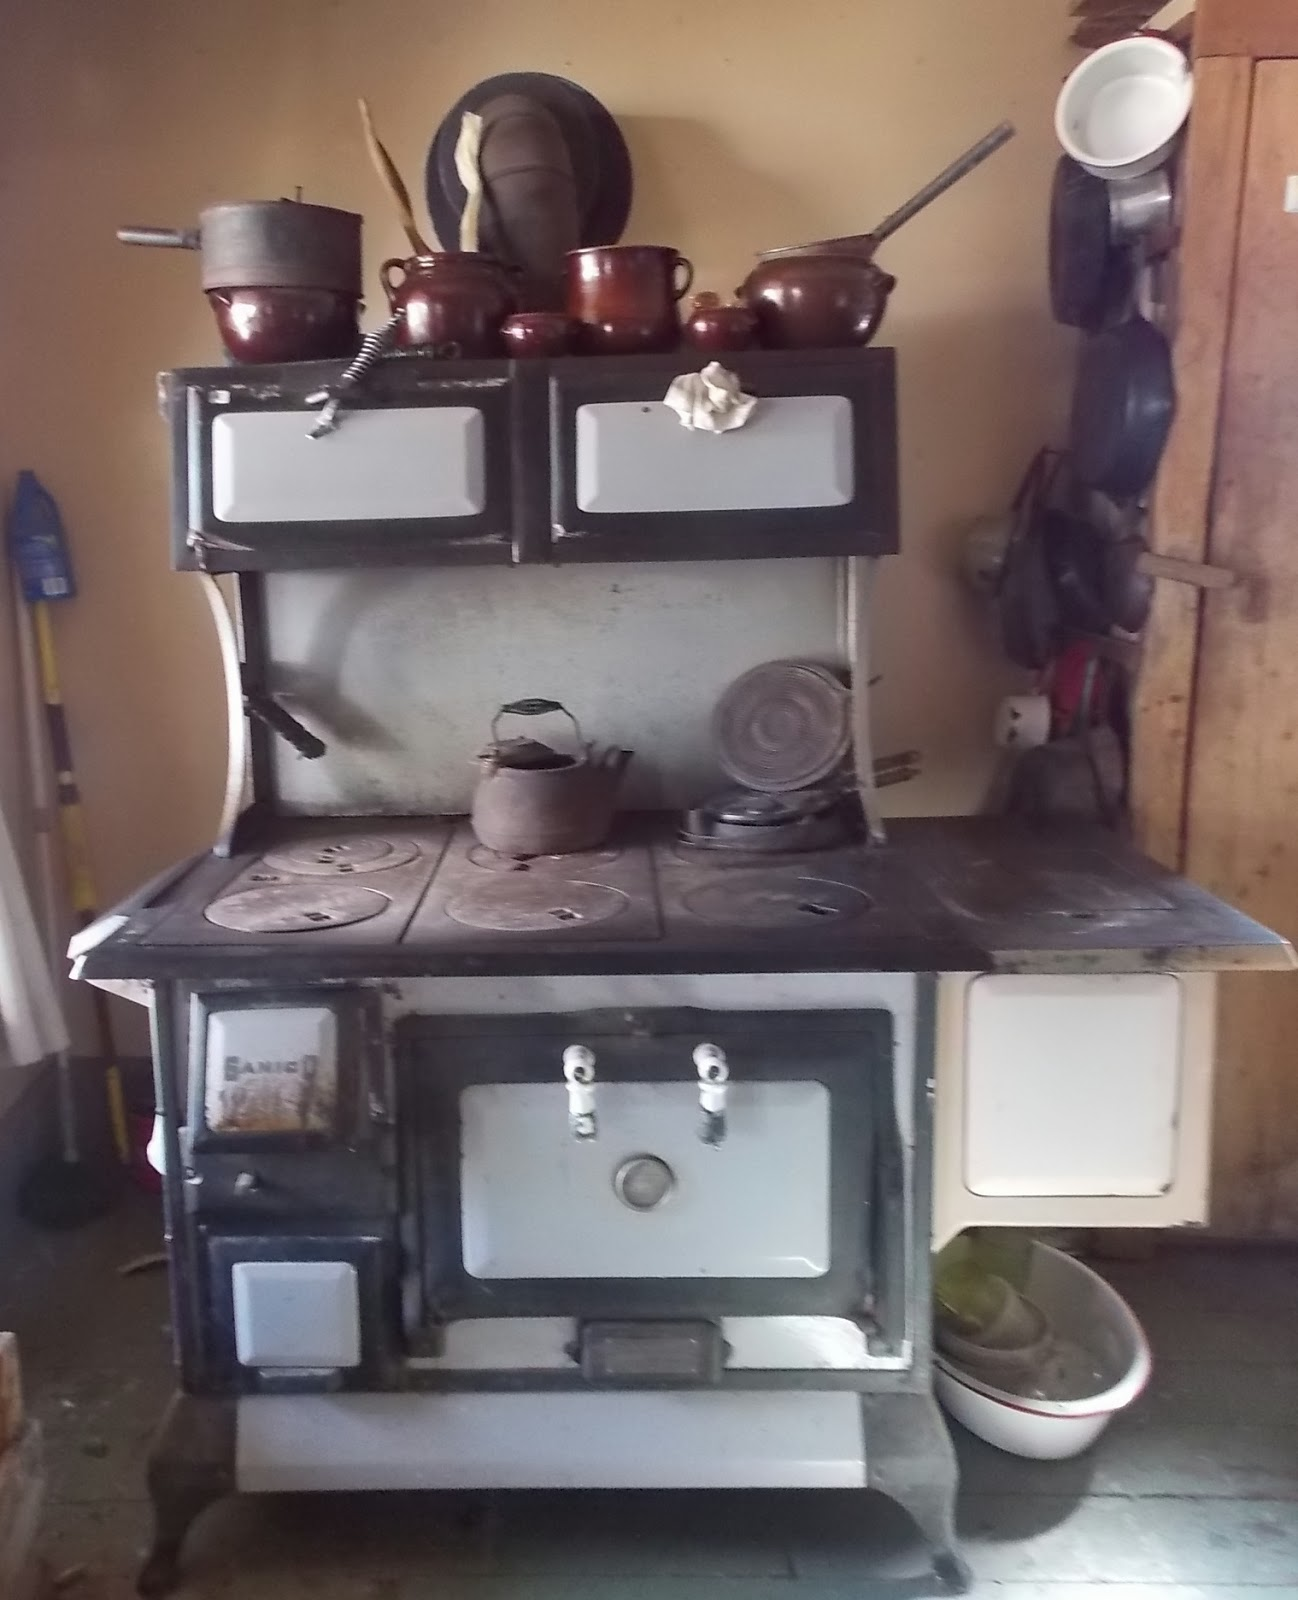 Andi Carter's Blog: Cooking in the 1800s